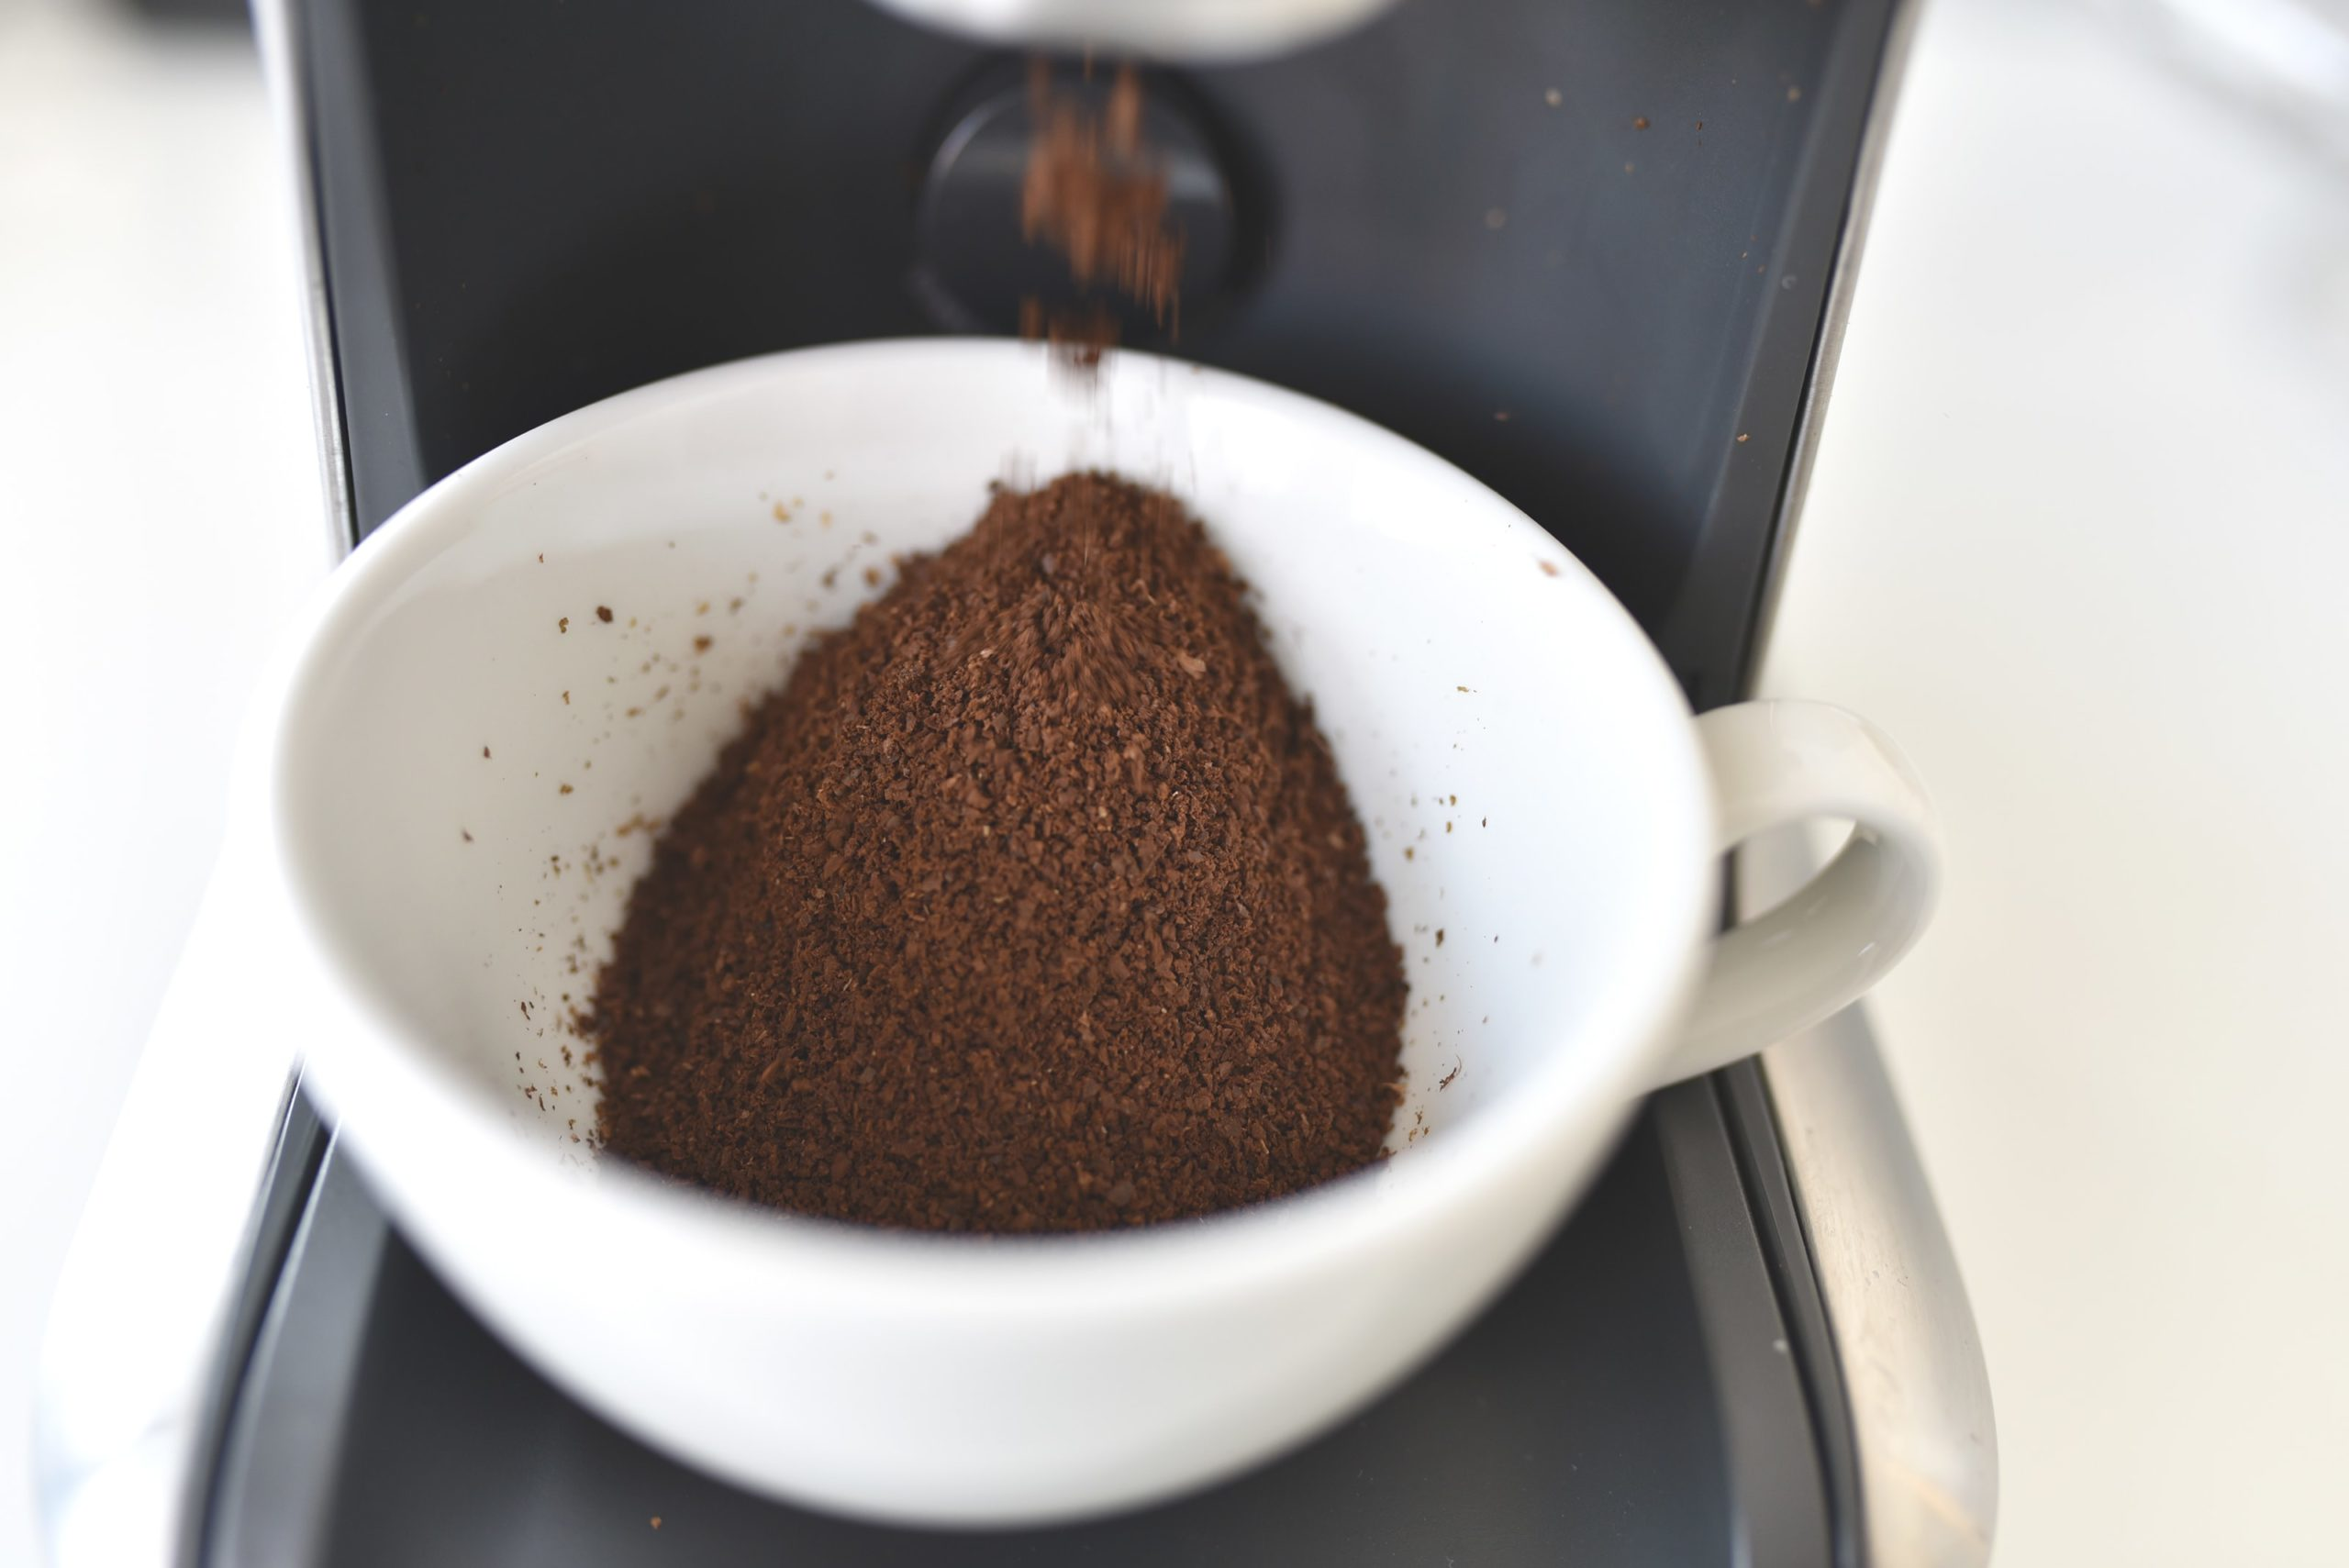 coffee being grounded into a white cup